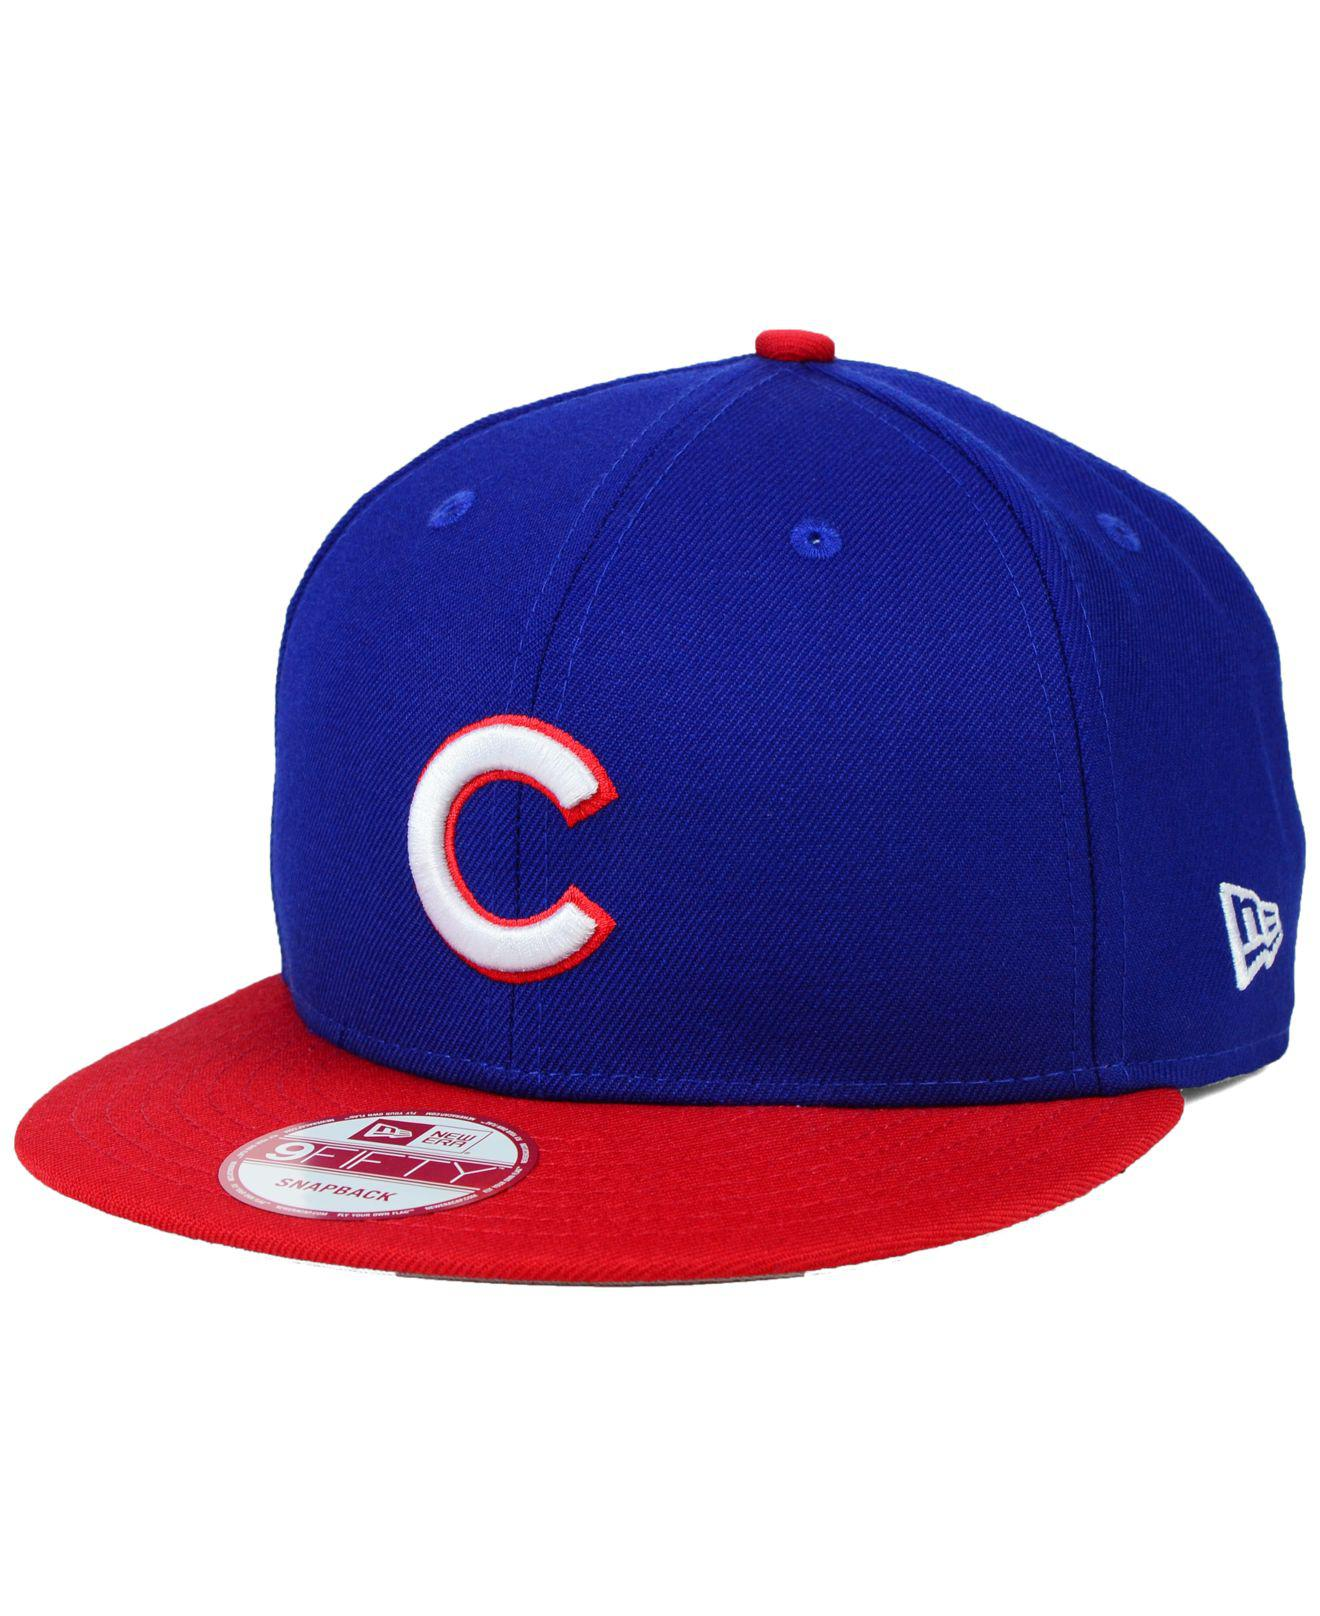 250682c1d4b Lyst - KTZ Chicago Cubs 2-tone Link 9fifty Snapback Cap in Blue for Men